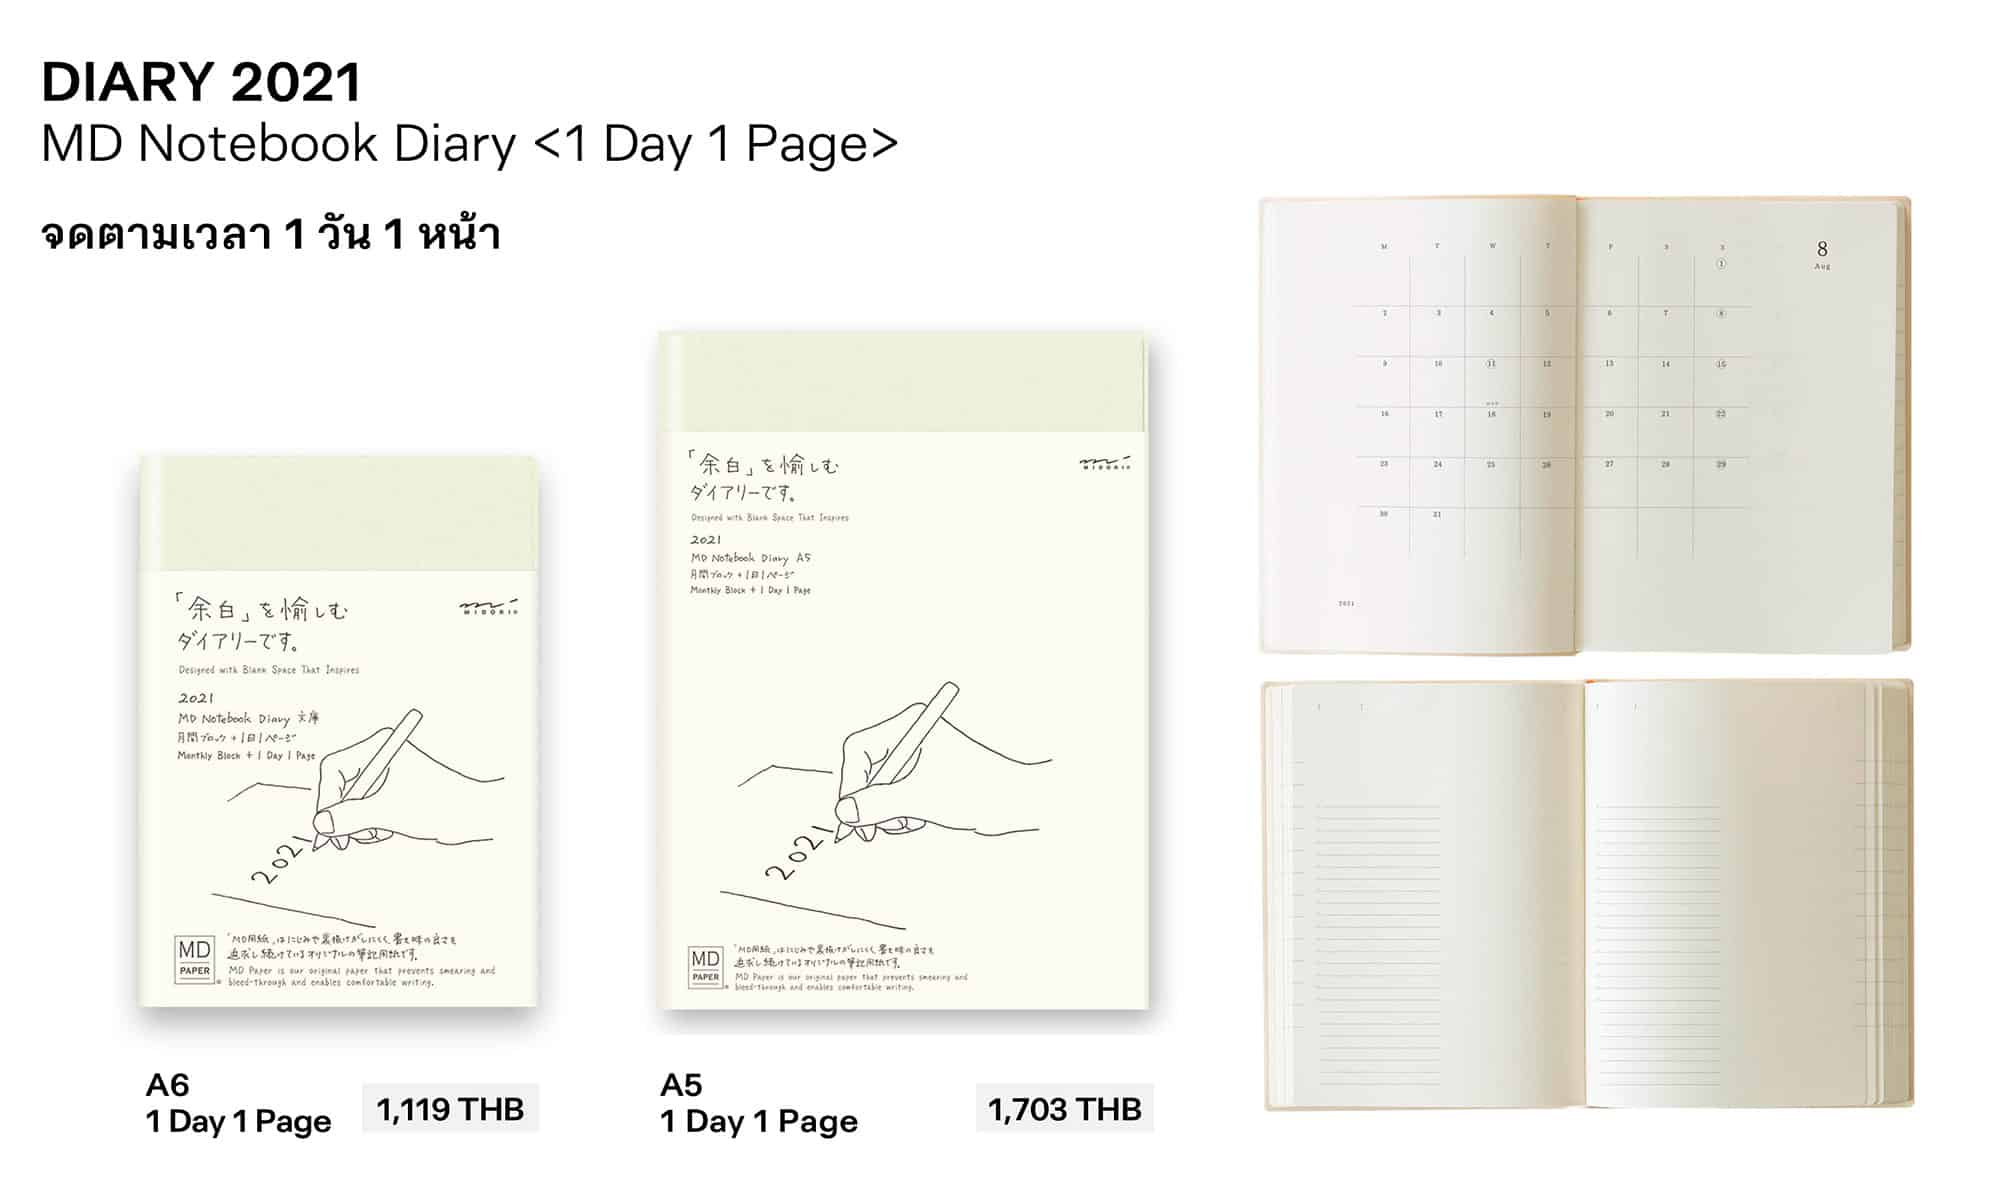 MIDORI MD Notebook Diary 1Day 1Page